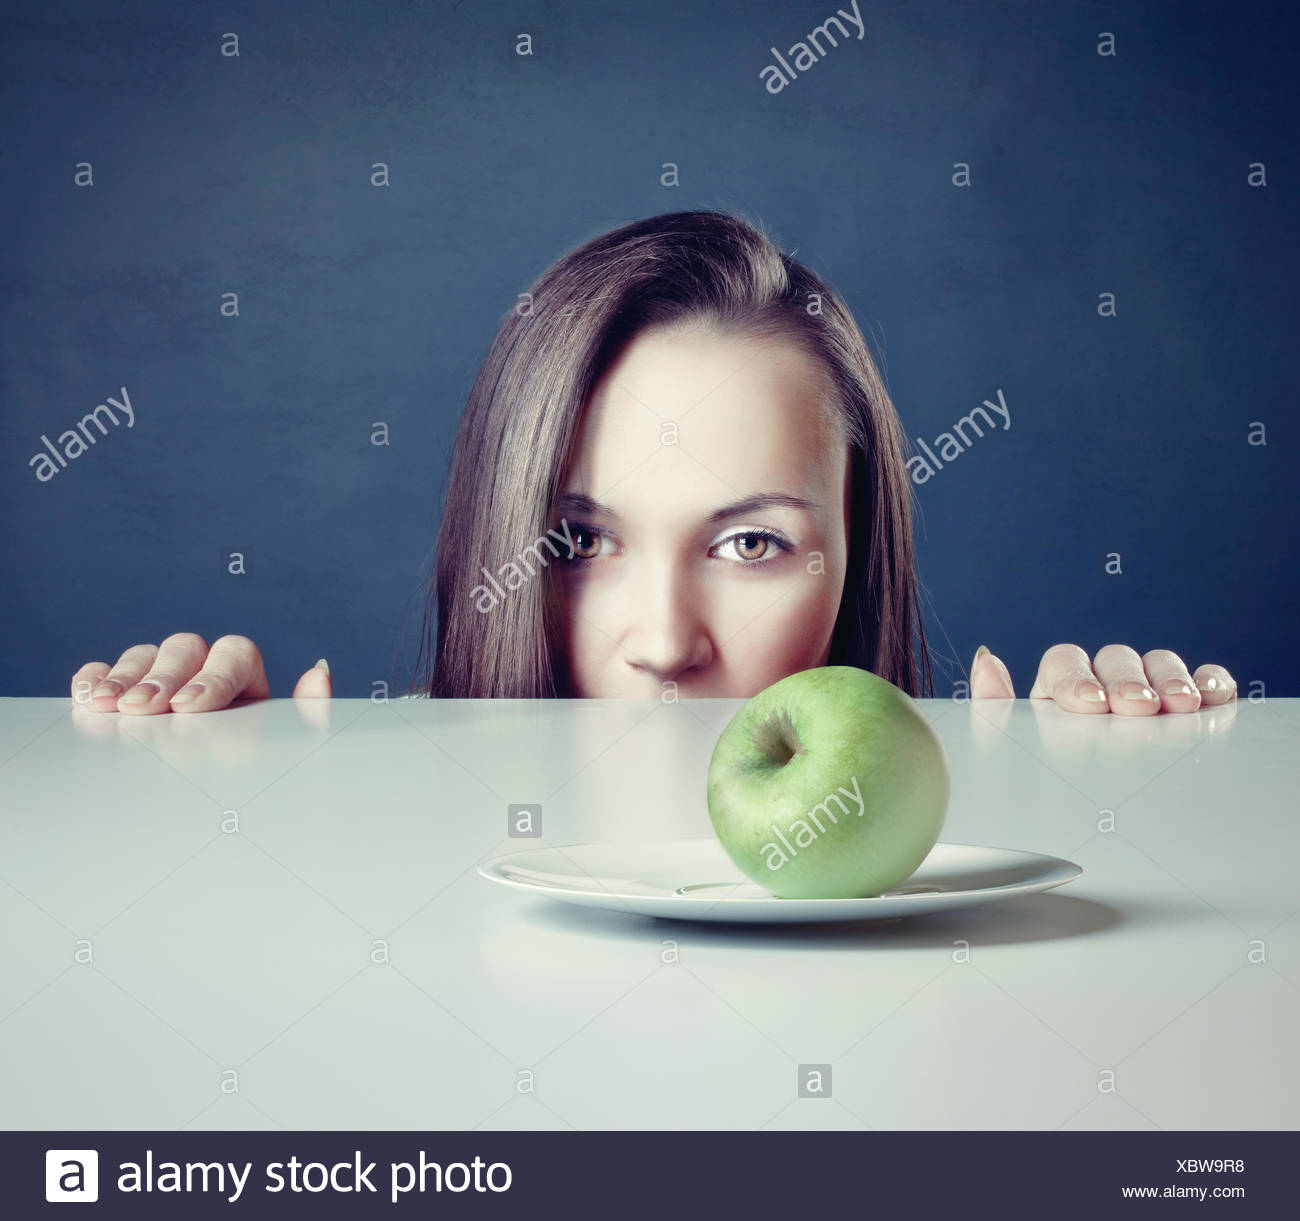 woman with apple - Stock Image